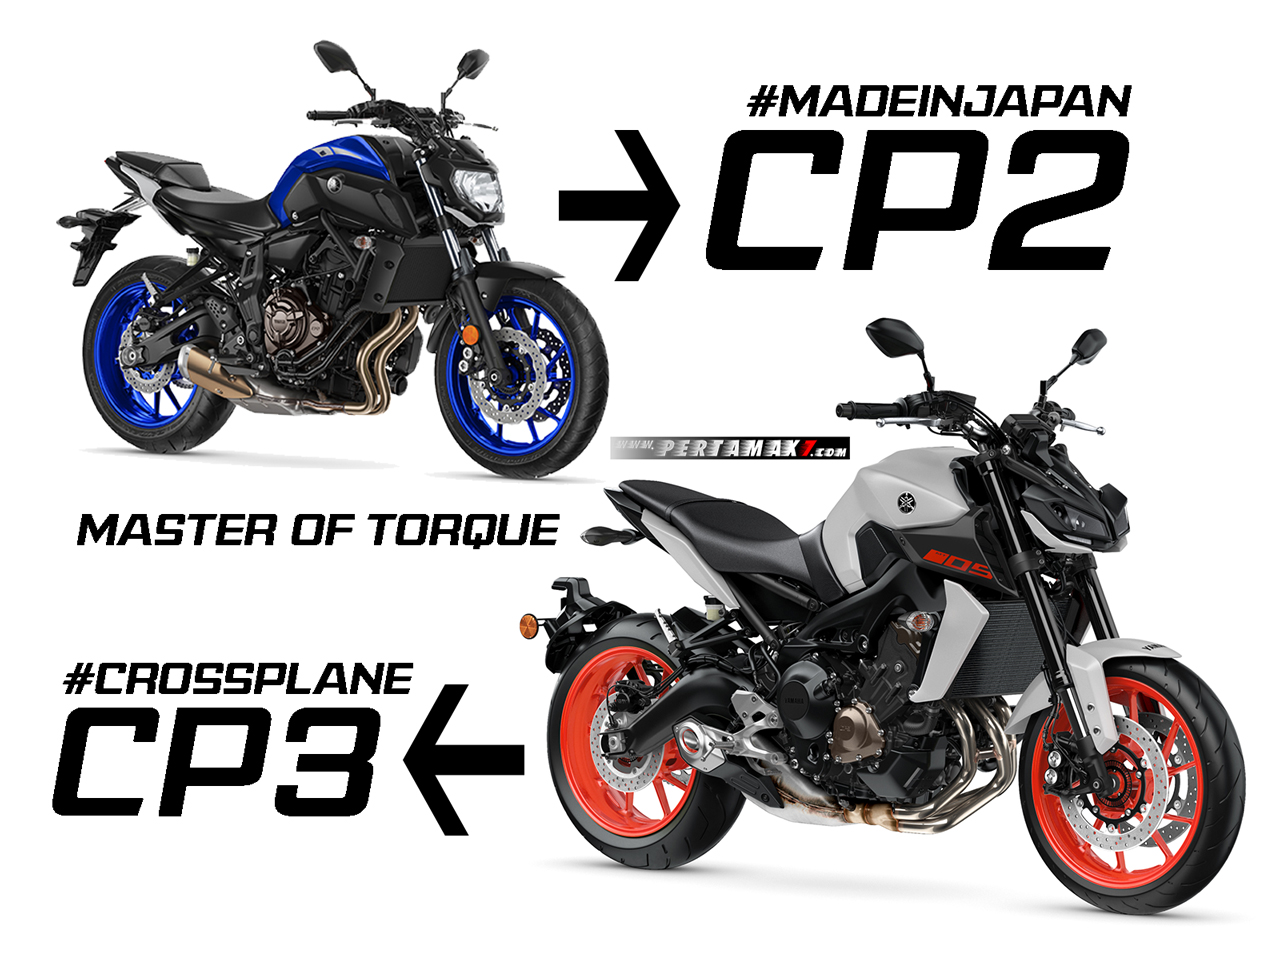 Komparasi Spesifikasi Yamaha MT07 VS MT09 Indonesia